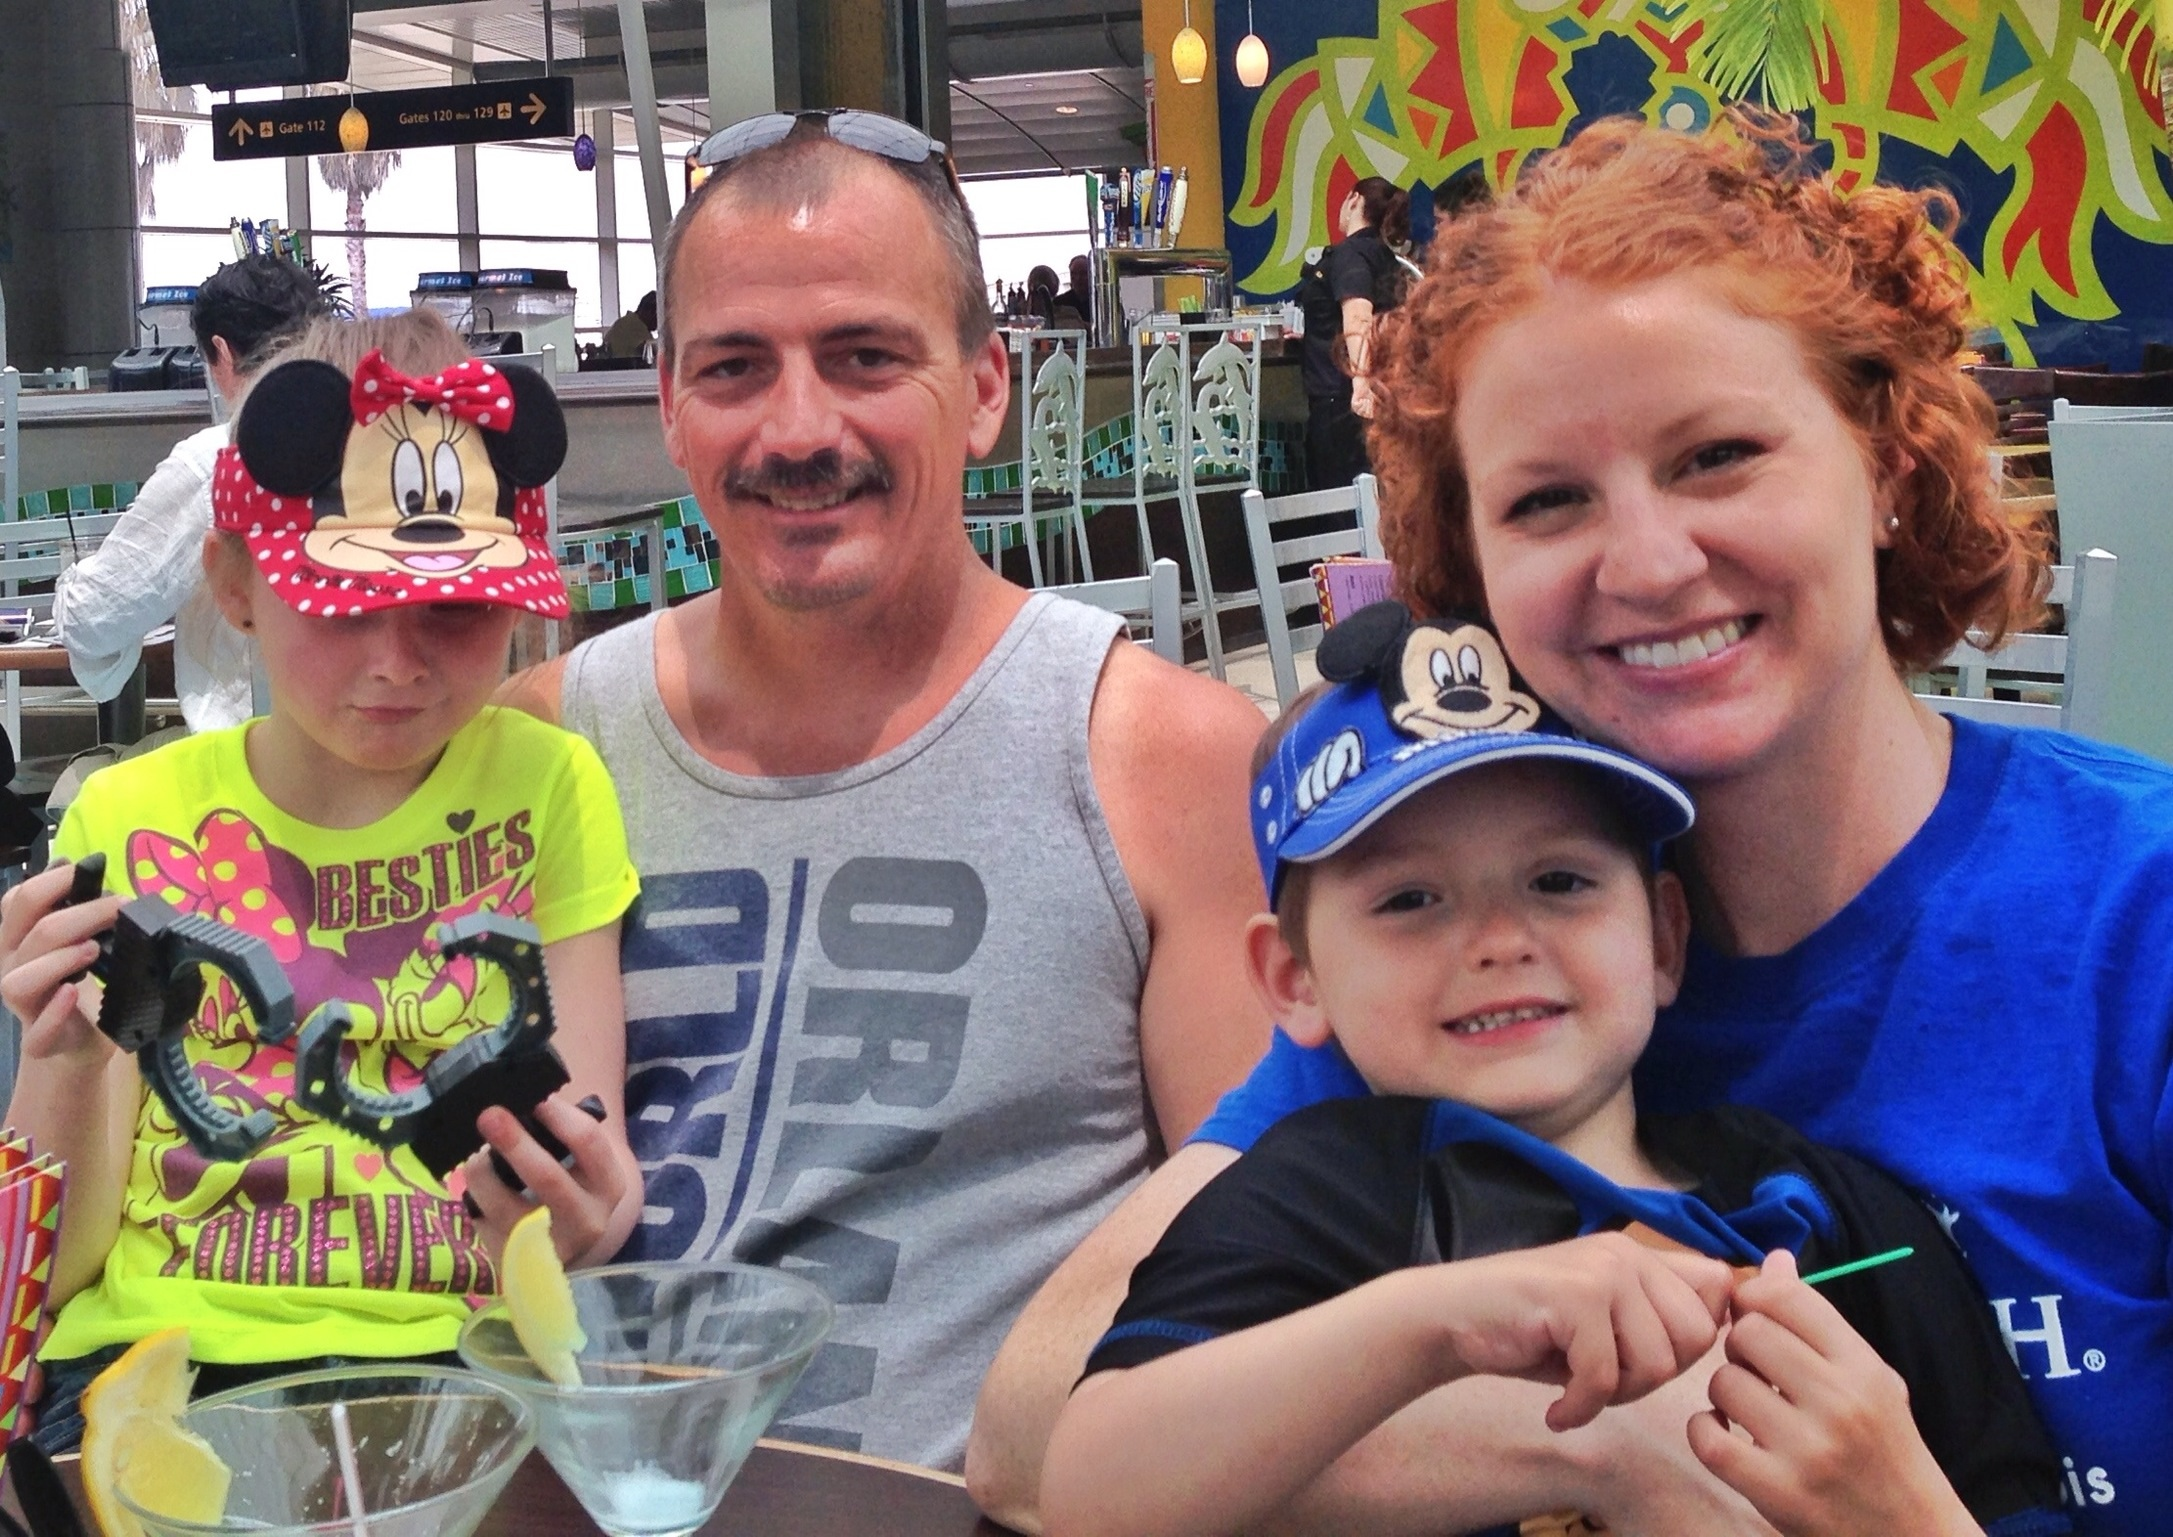 The Howard family - dad Jim, mom Lacey and their kids Finley, left, and Landon - spent a week in Orlando through Give Kids the World